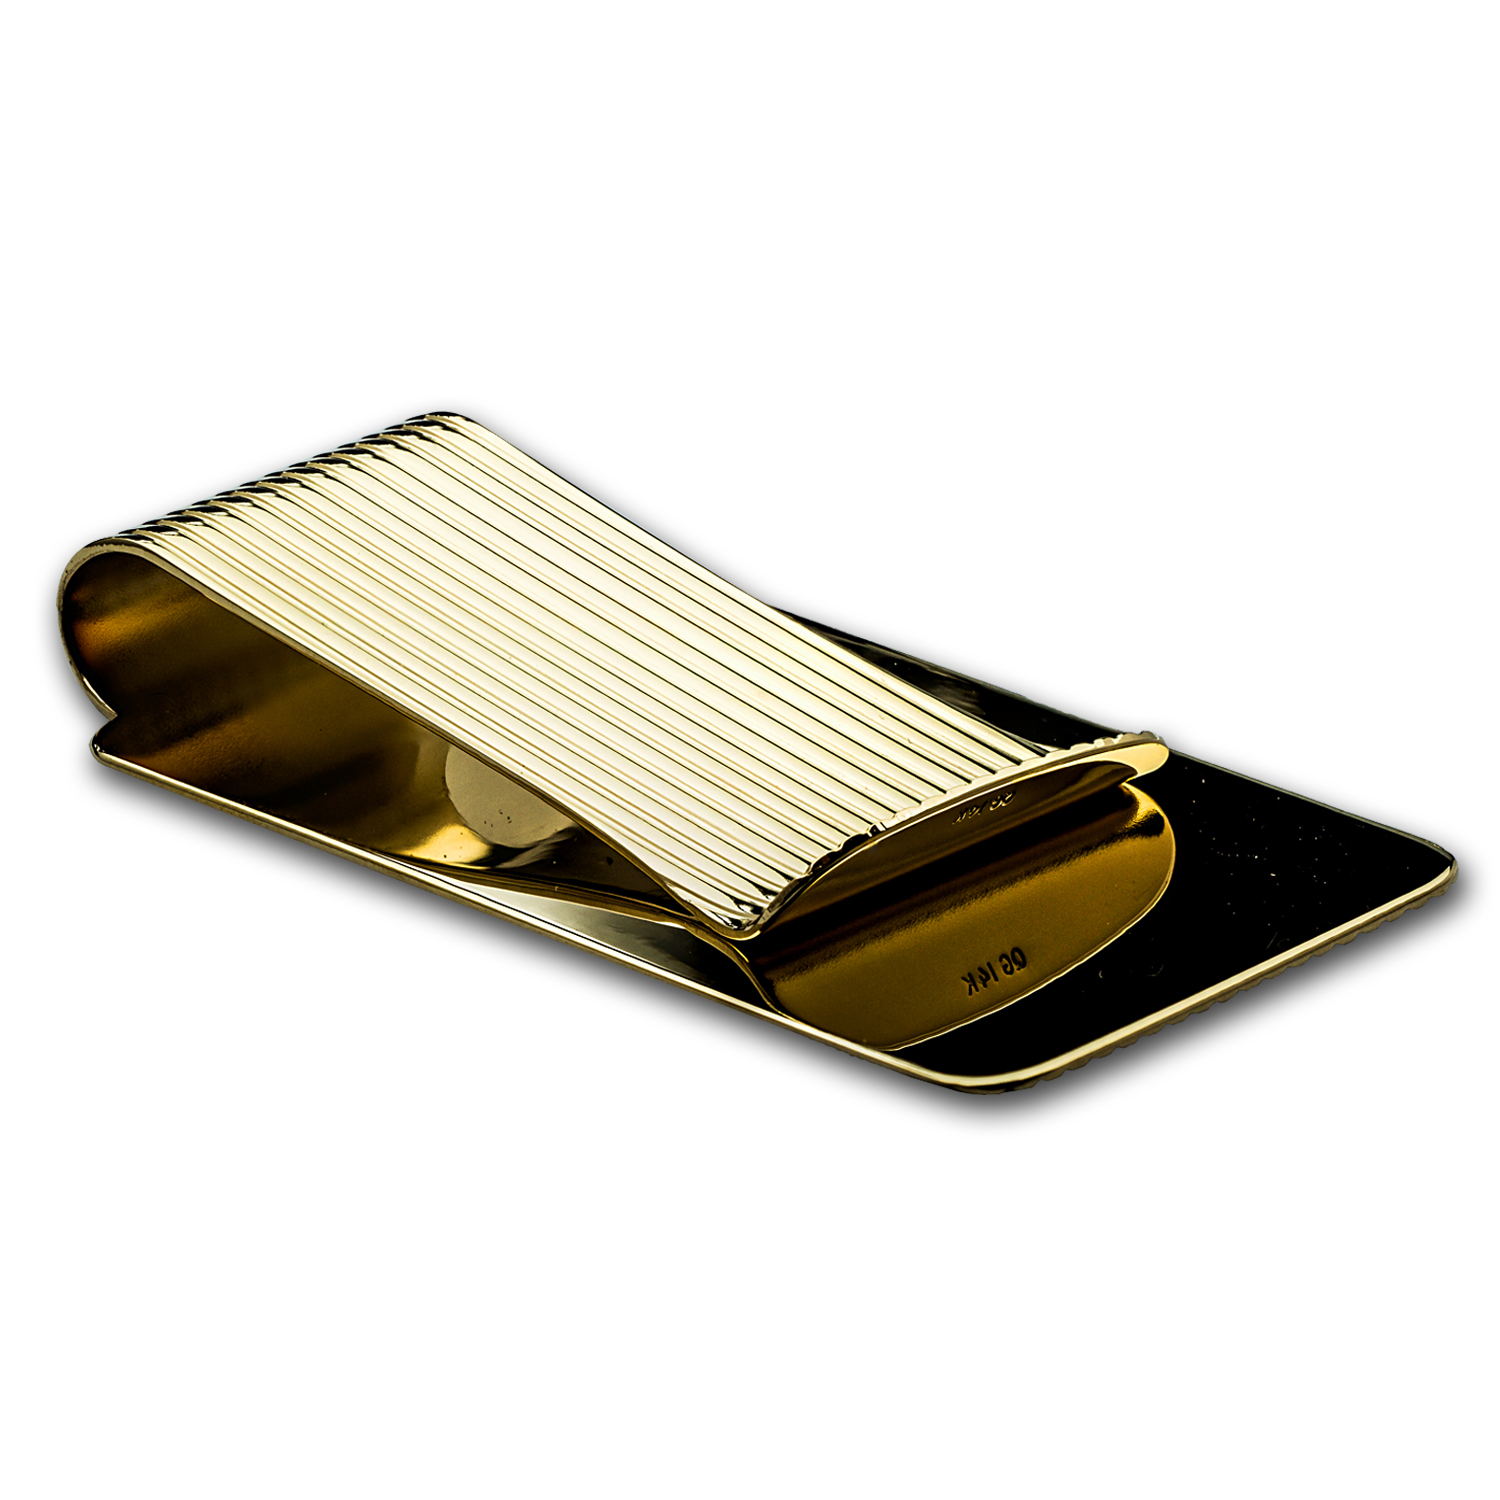 14K Gold Money Clip (Textured)